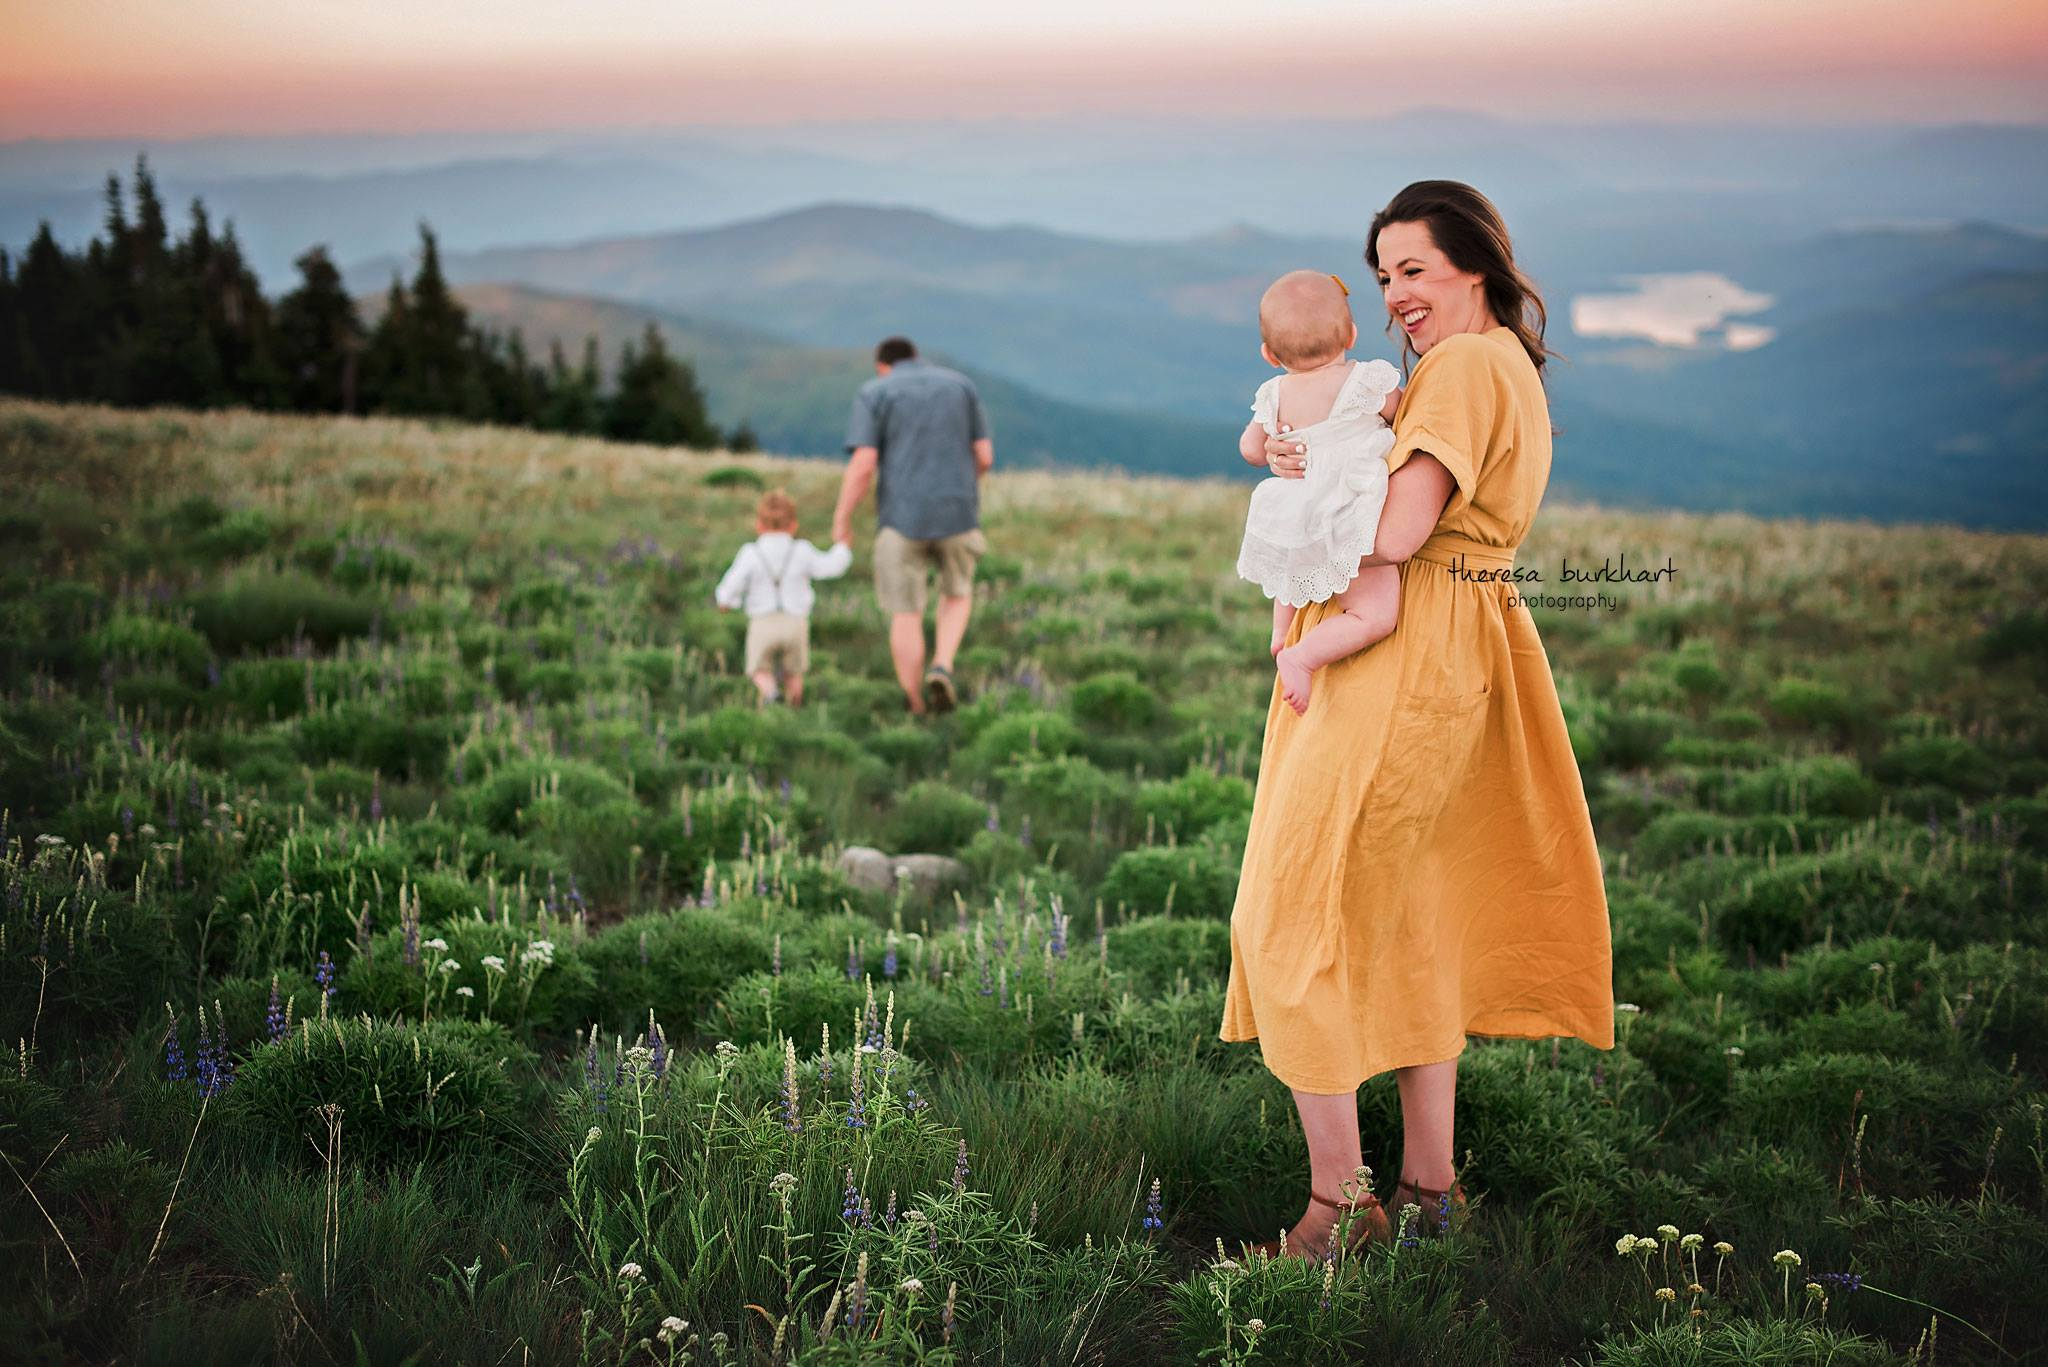 Theresa Burkhart Photography Daily Fan Favorite, Family walking through meadow